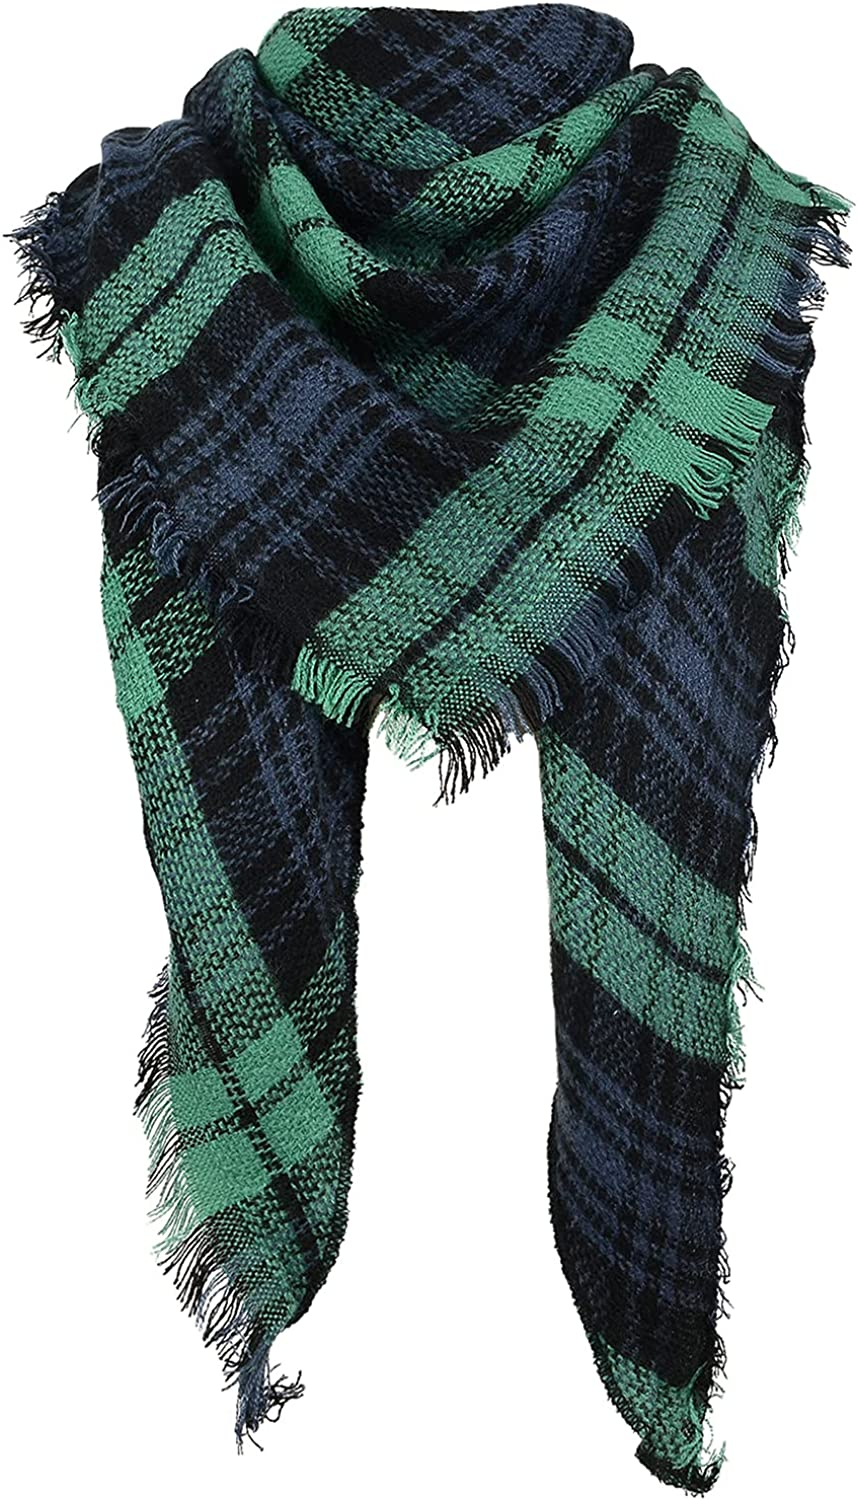 Scarfs for Women Winter Triangle Scarf Classic Plaid Warm Scarf Oversized Soft Scarves Large Knitted Wrap Shawl